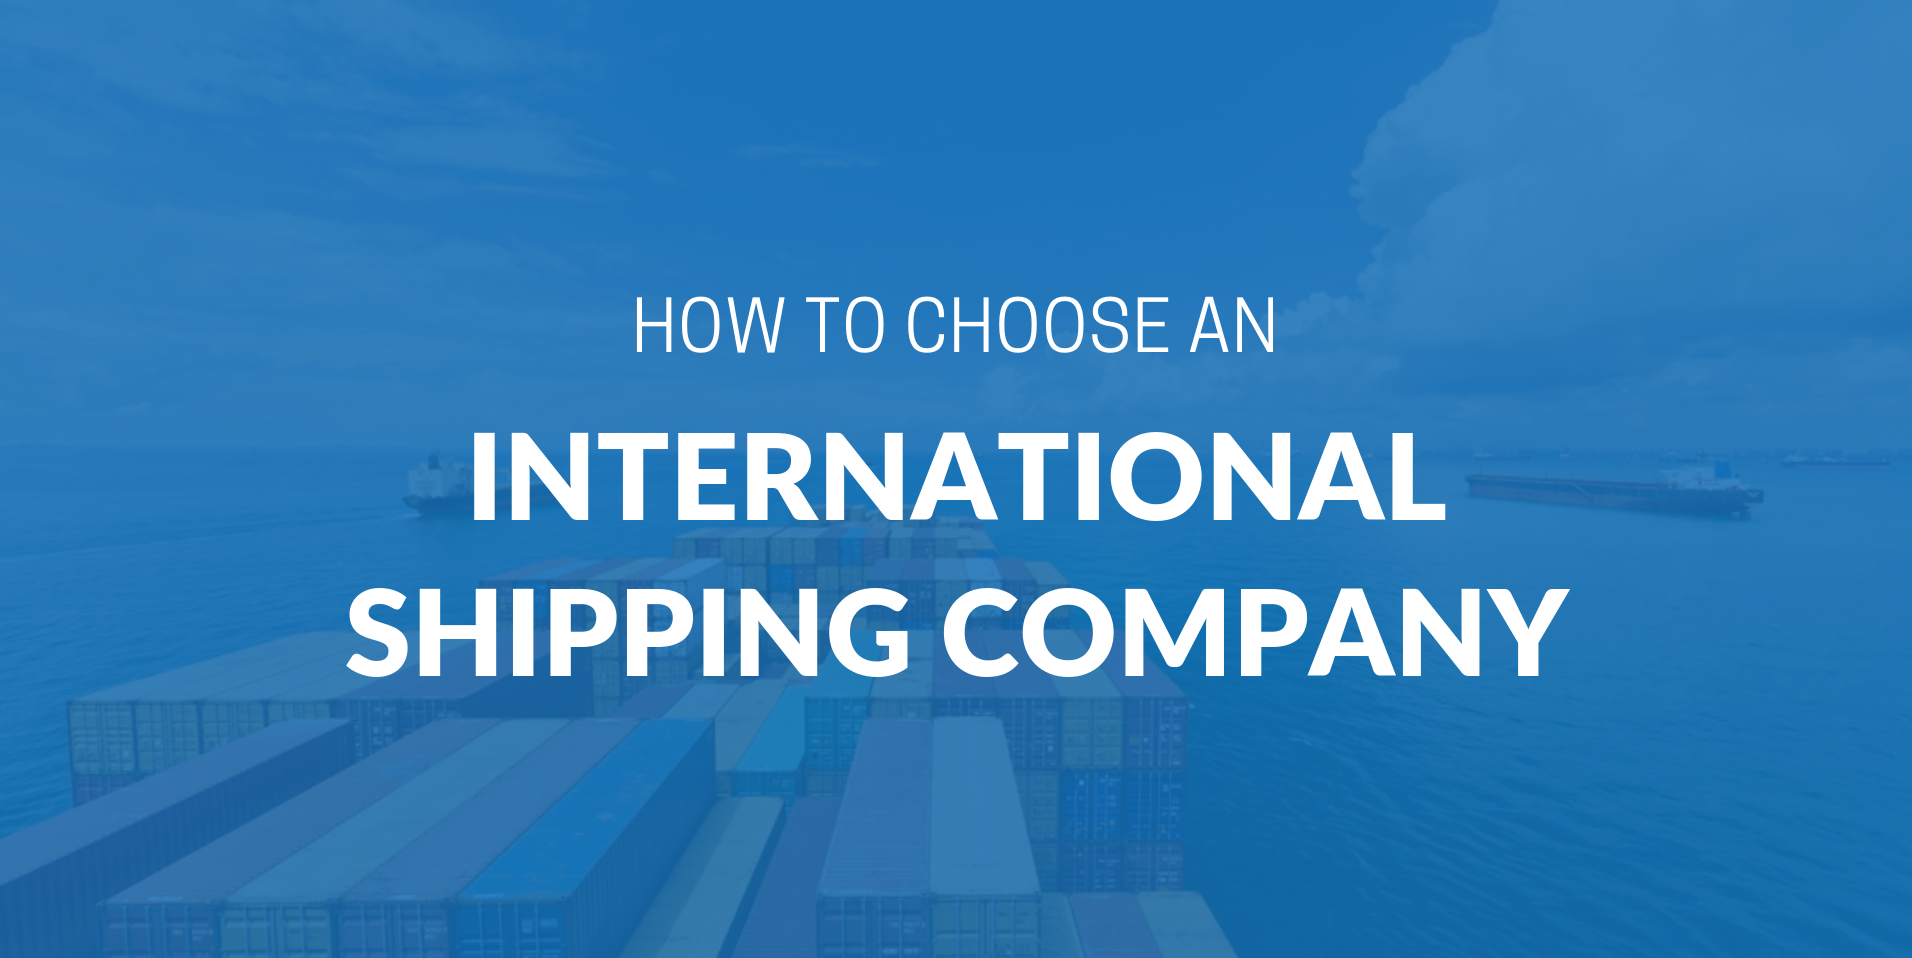 How to choose an international shipping company | iContainers